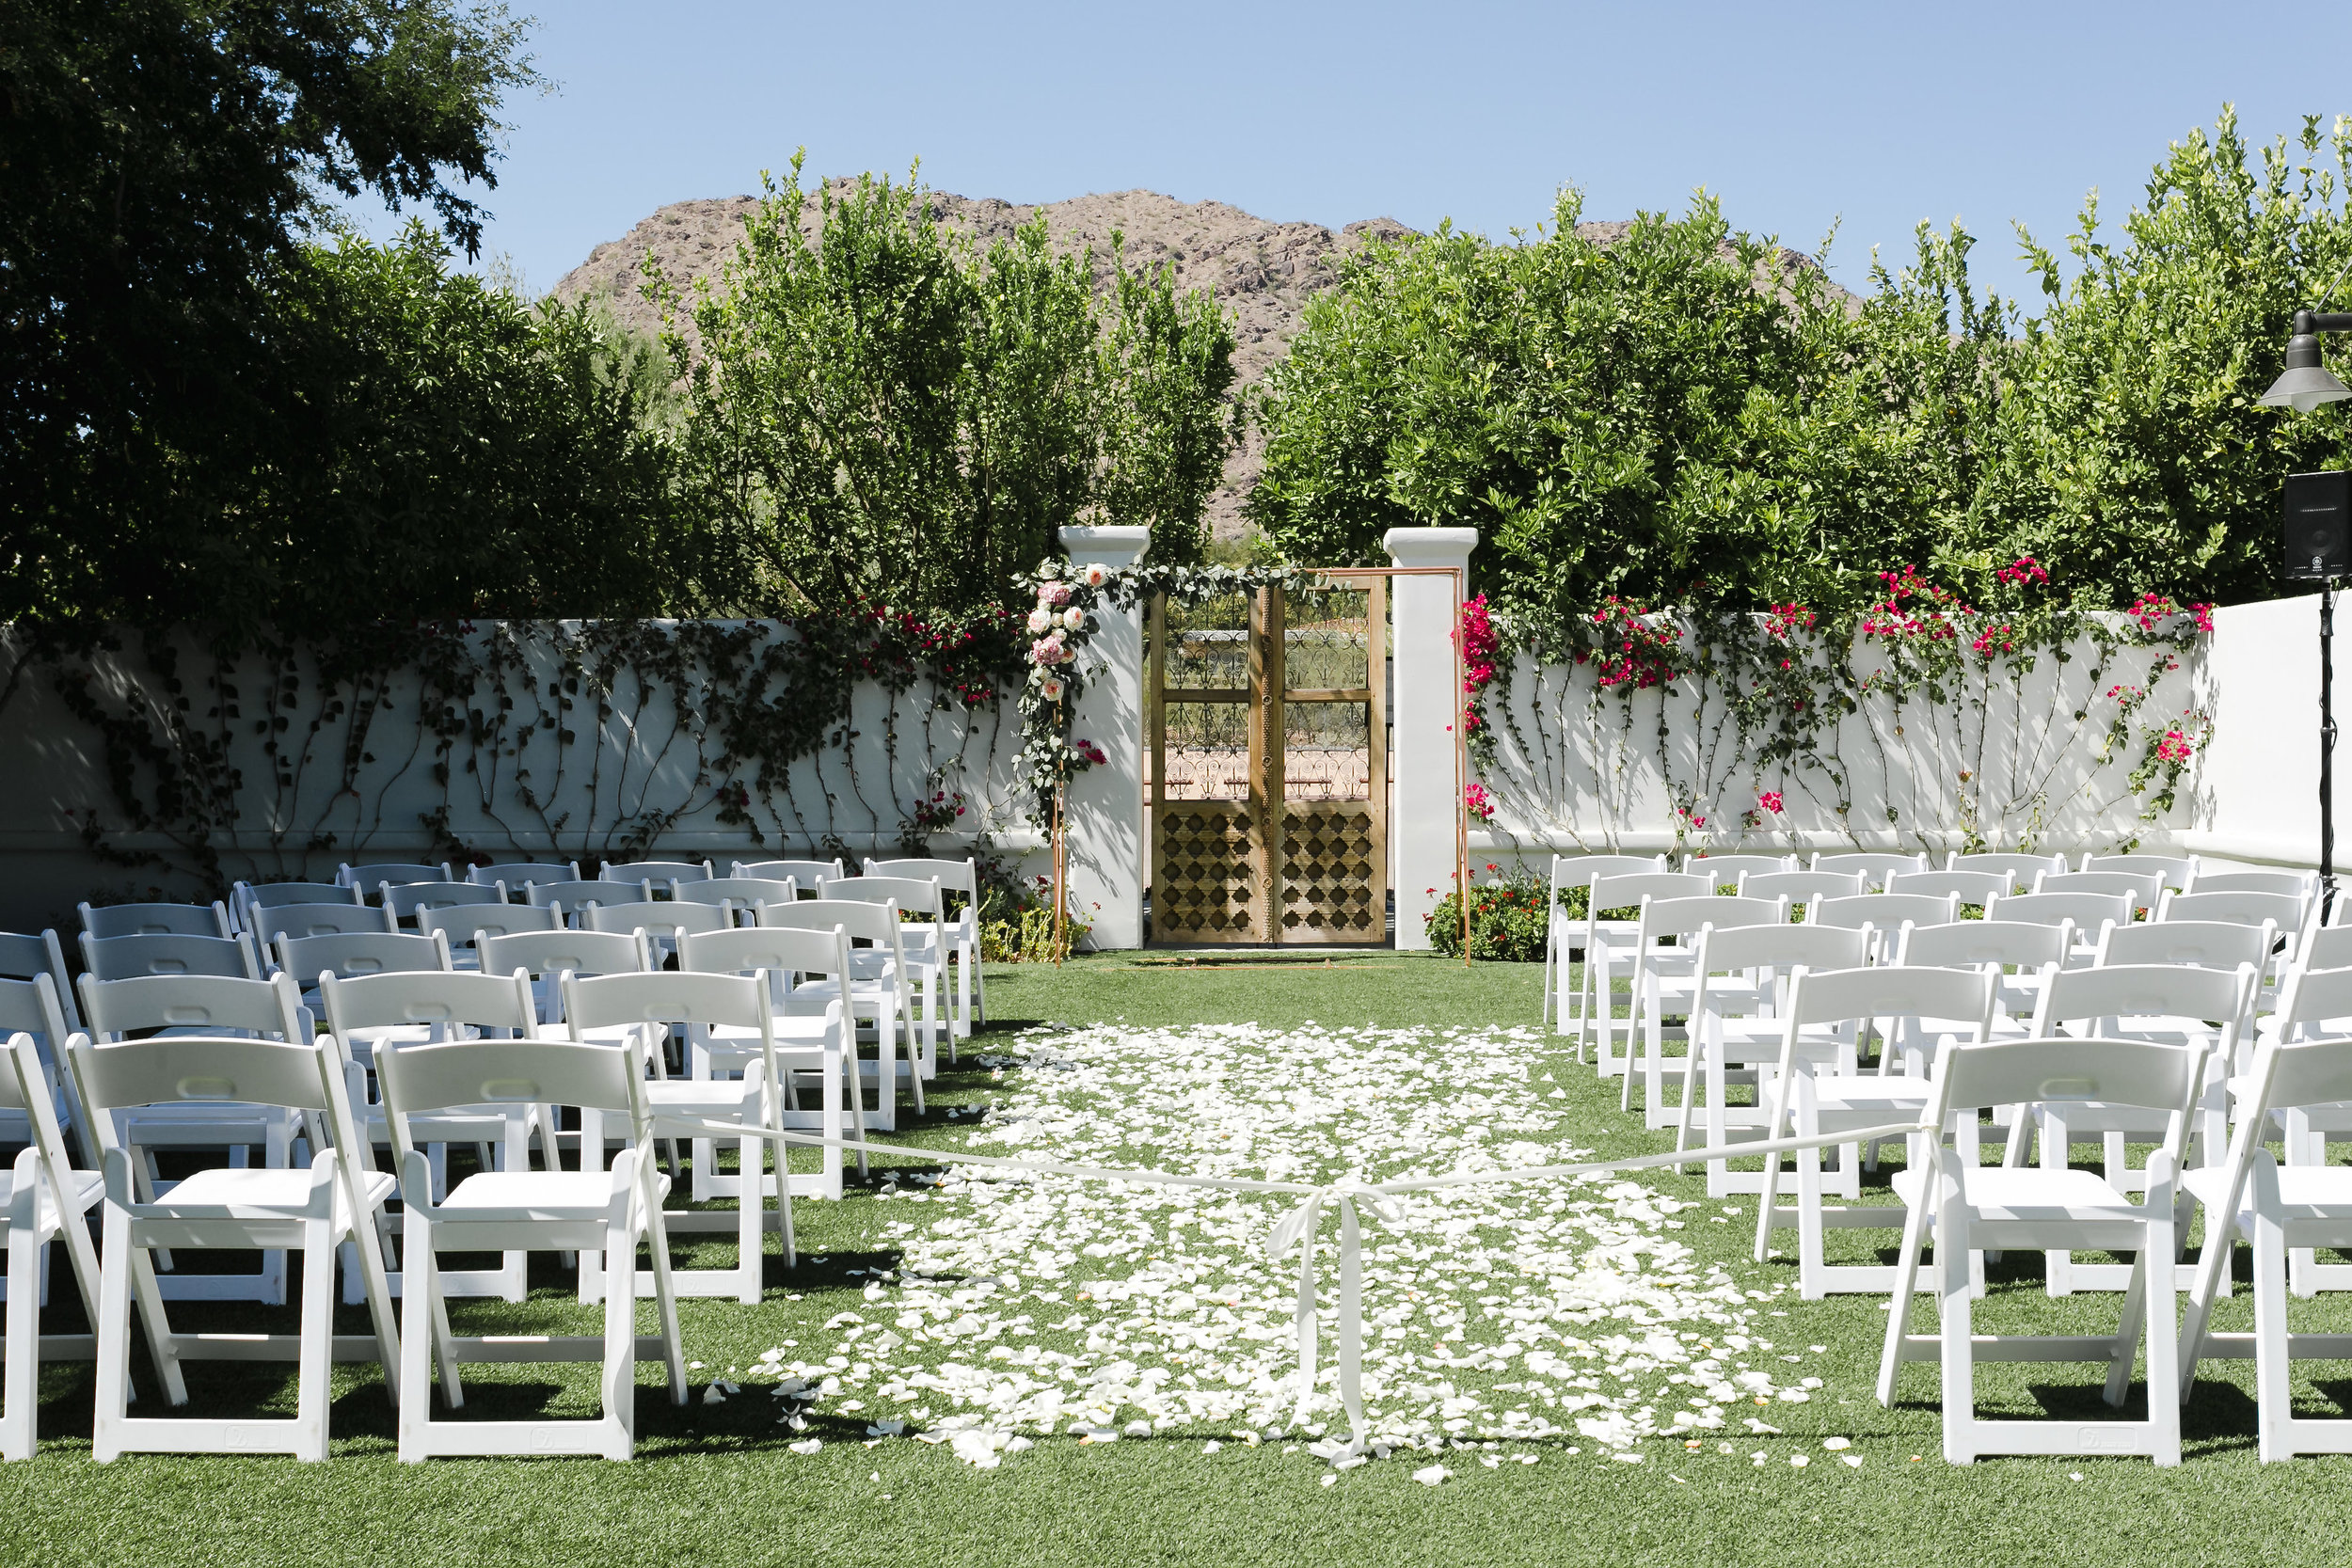 Cinco de Mayo themed Wedding at El Chorro in Paradise Valley, Arizona: Annika & Aaron- Konsider It Done- AZ Arizona Wedding & Event Planner, Designer, Coordinator Planning in Scottsdale, Phoenix, Paradise Valley, Tempe, Gilbert, Mesa, Chandler, Tucson, Sedona